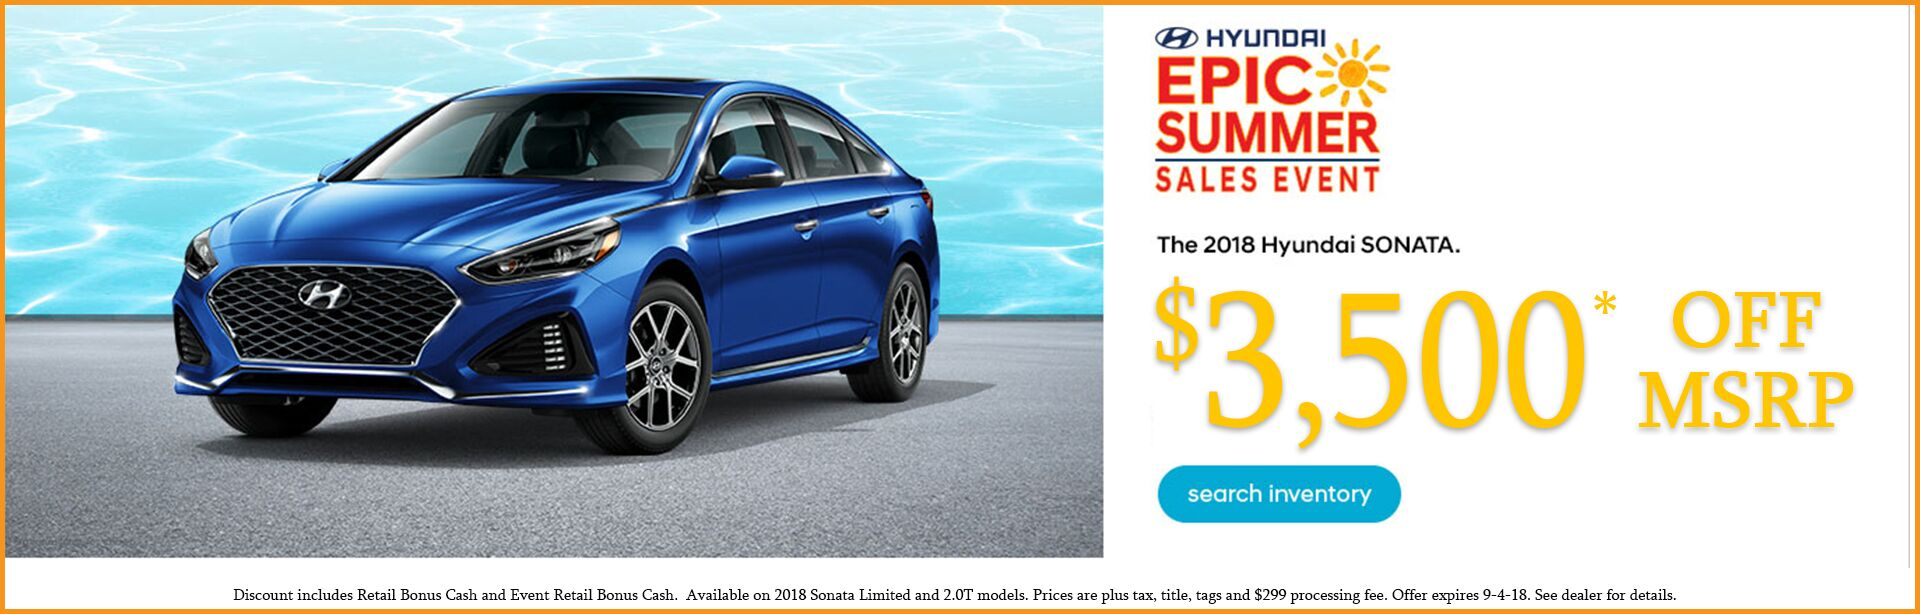 Sonata Summer Sales Event